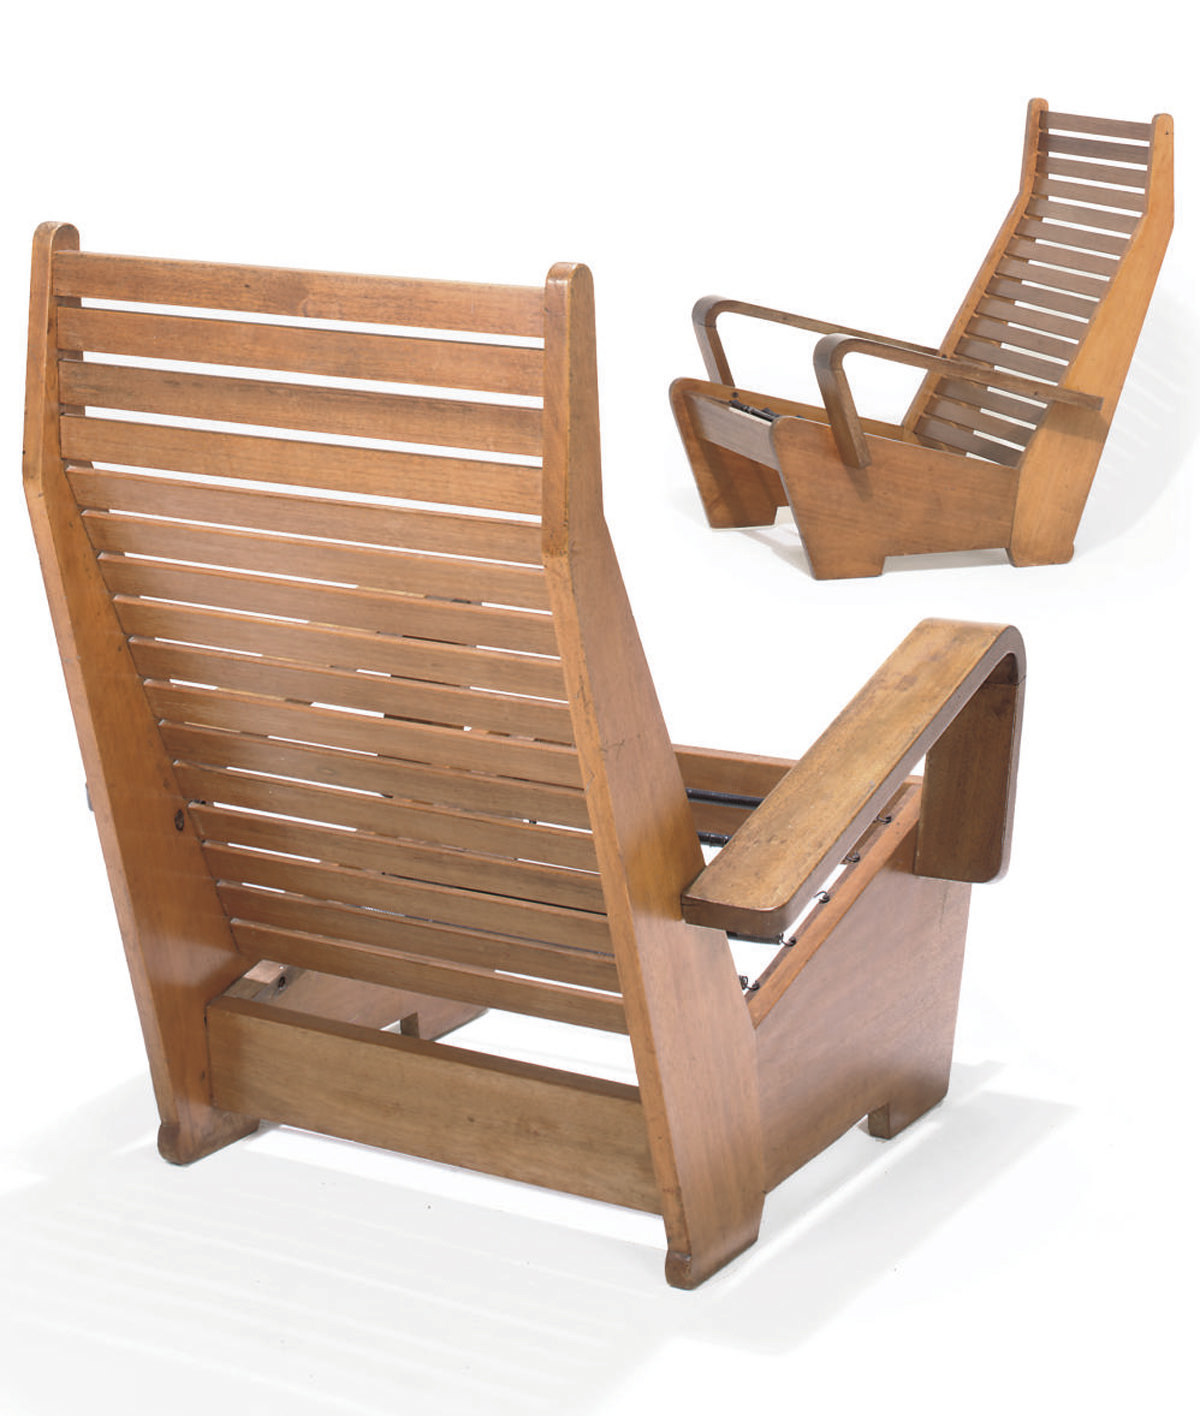 MARCEL BREUER, ATTRIBUTED TO,